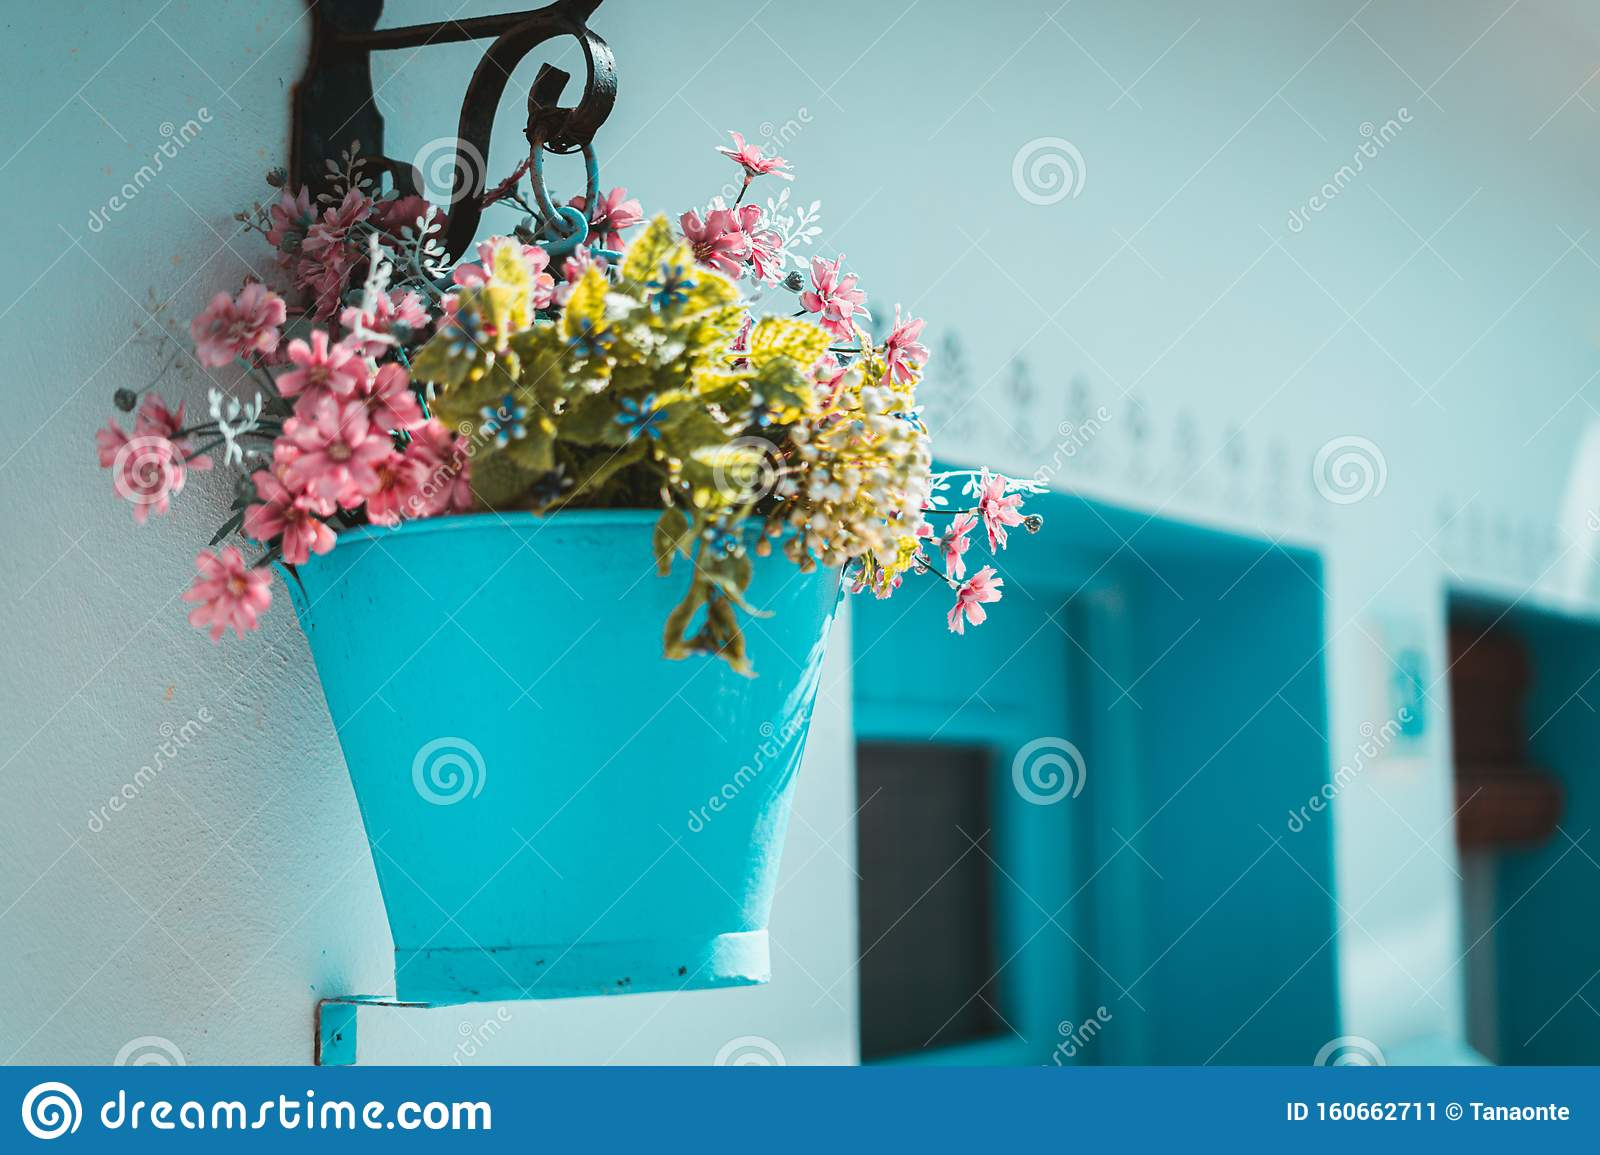 Pink Flowers In A Blue Bucket Hung On A White Wall Typical Mediterranean Village Stock Image Image Of Romantic Relax 160662711